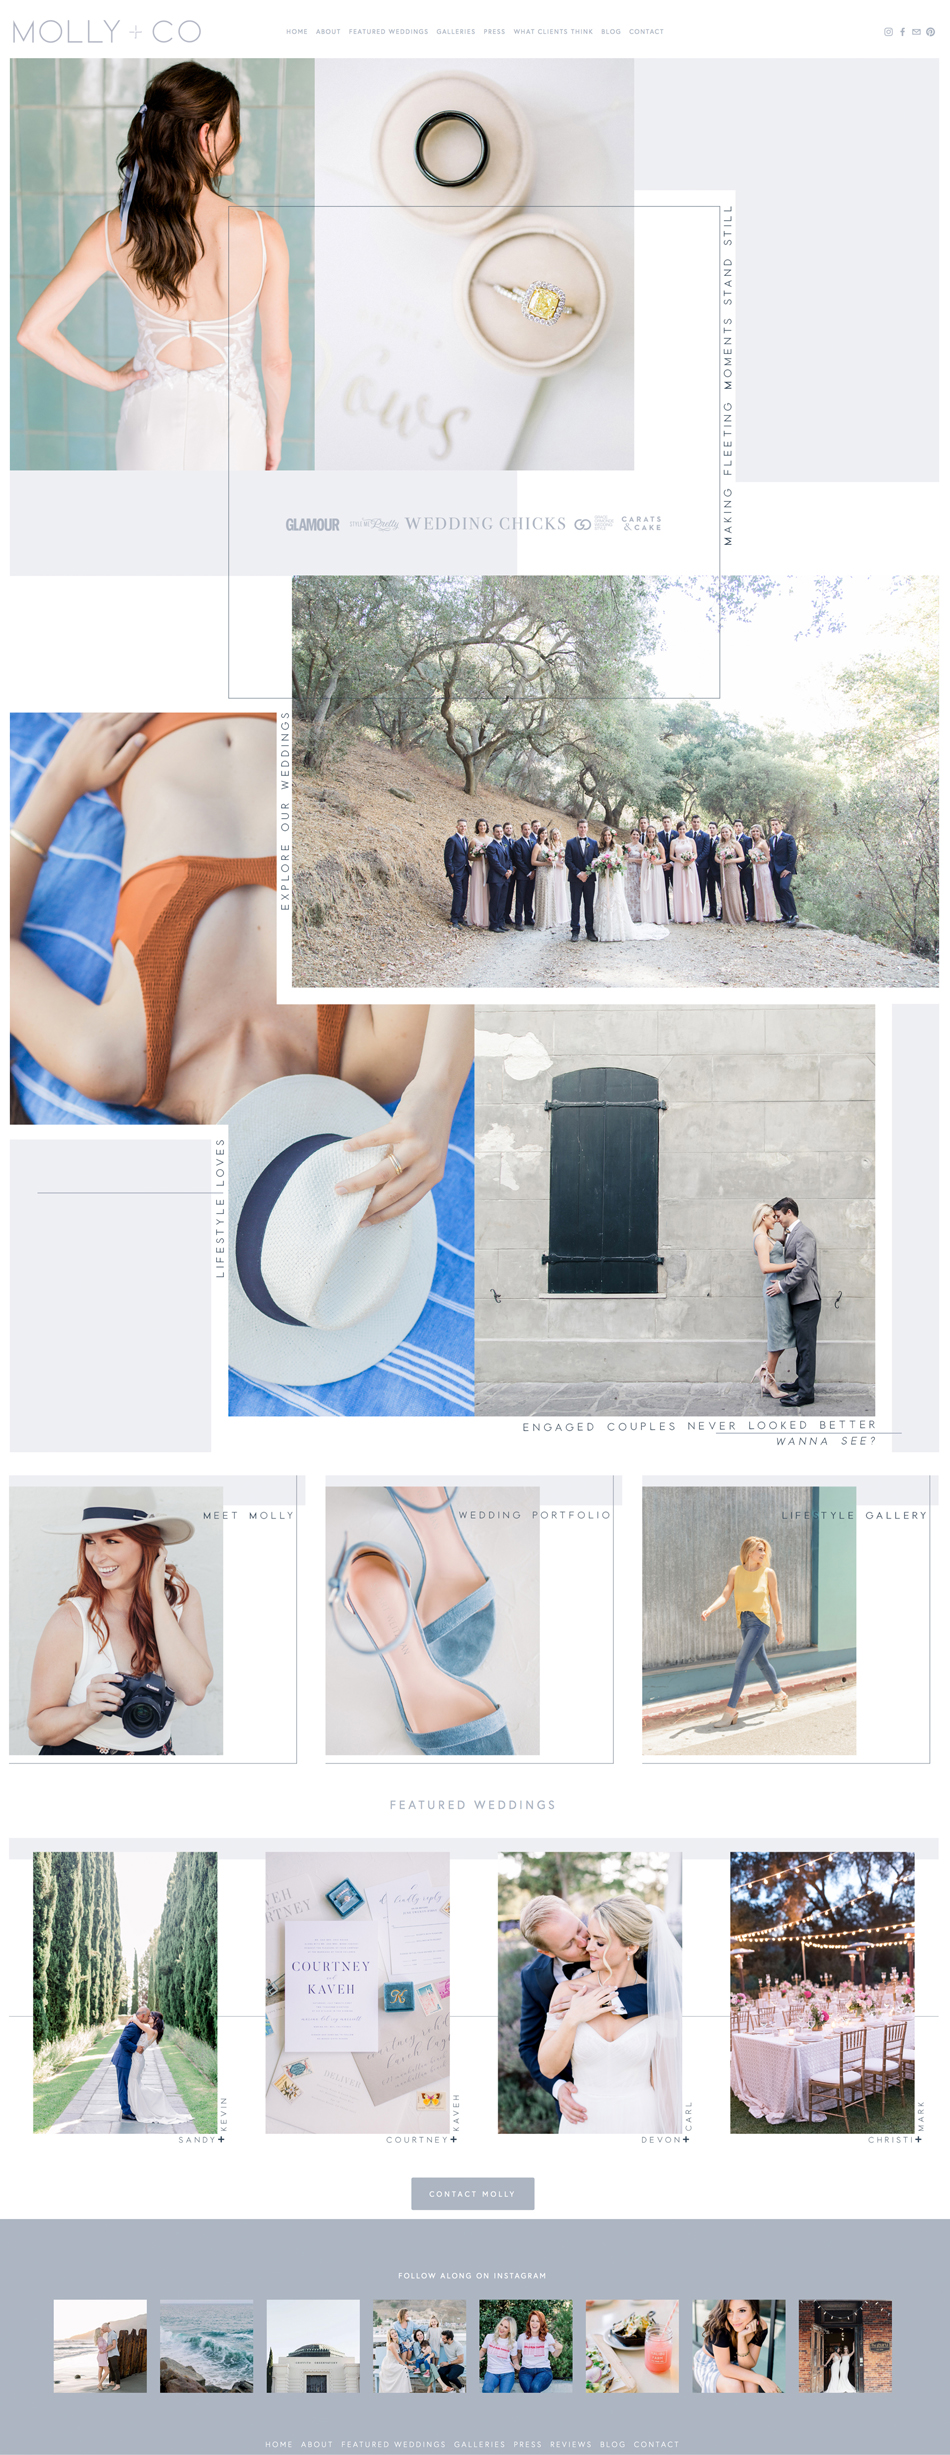 theeditorstouch.com | Squarespace Website Designer for Photographers and Wedding Industry Professionals | The Editor's Touch Web Design